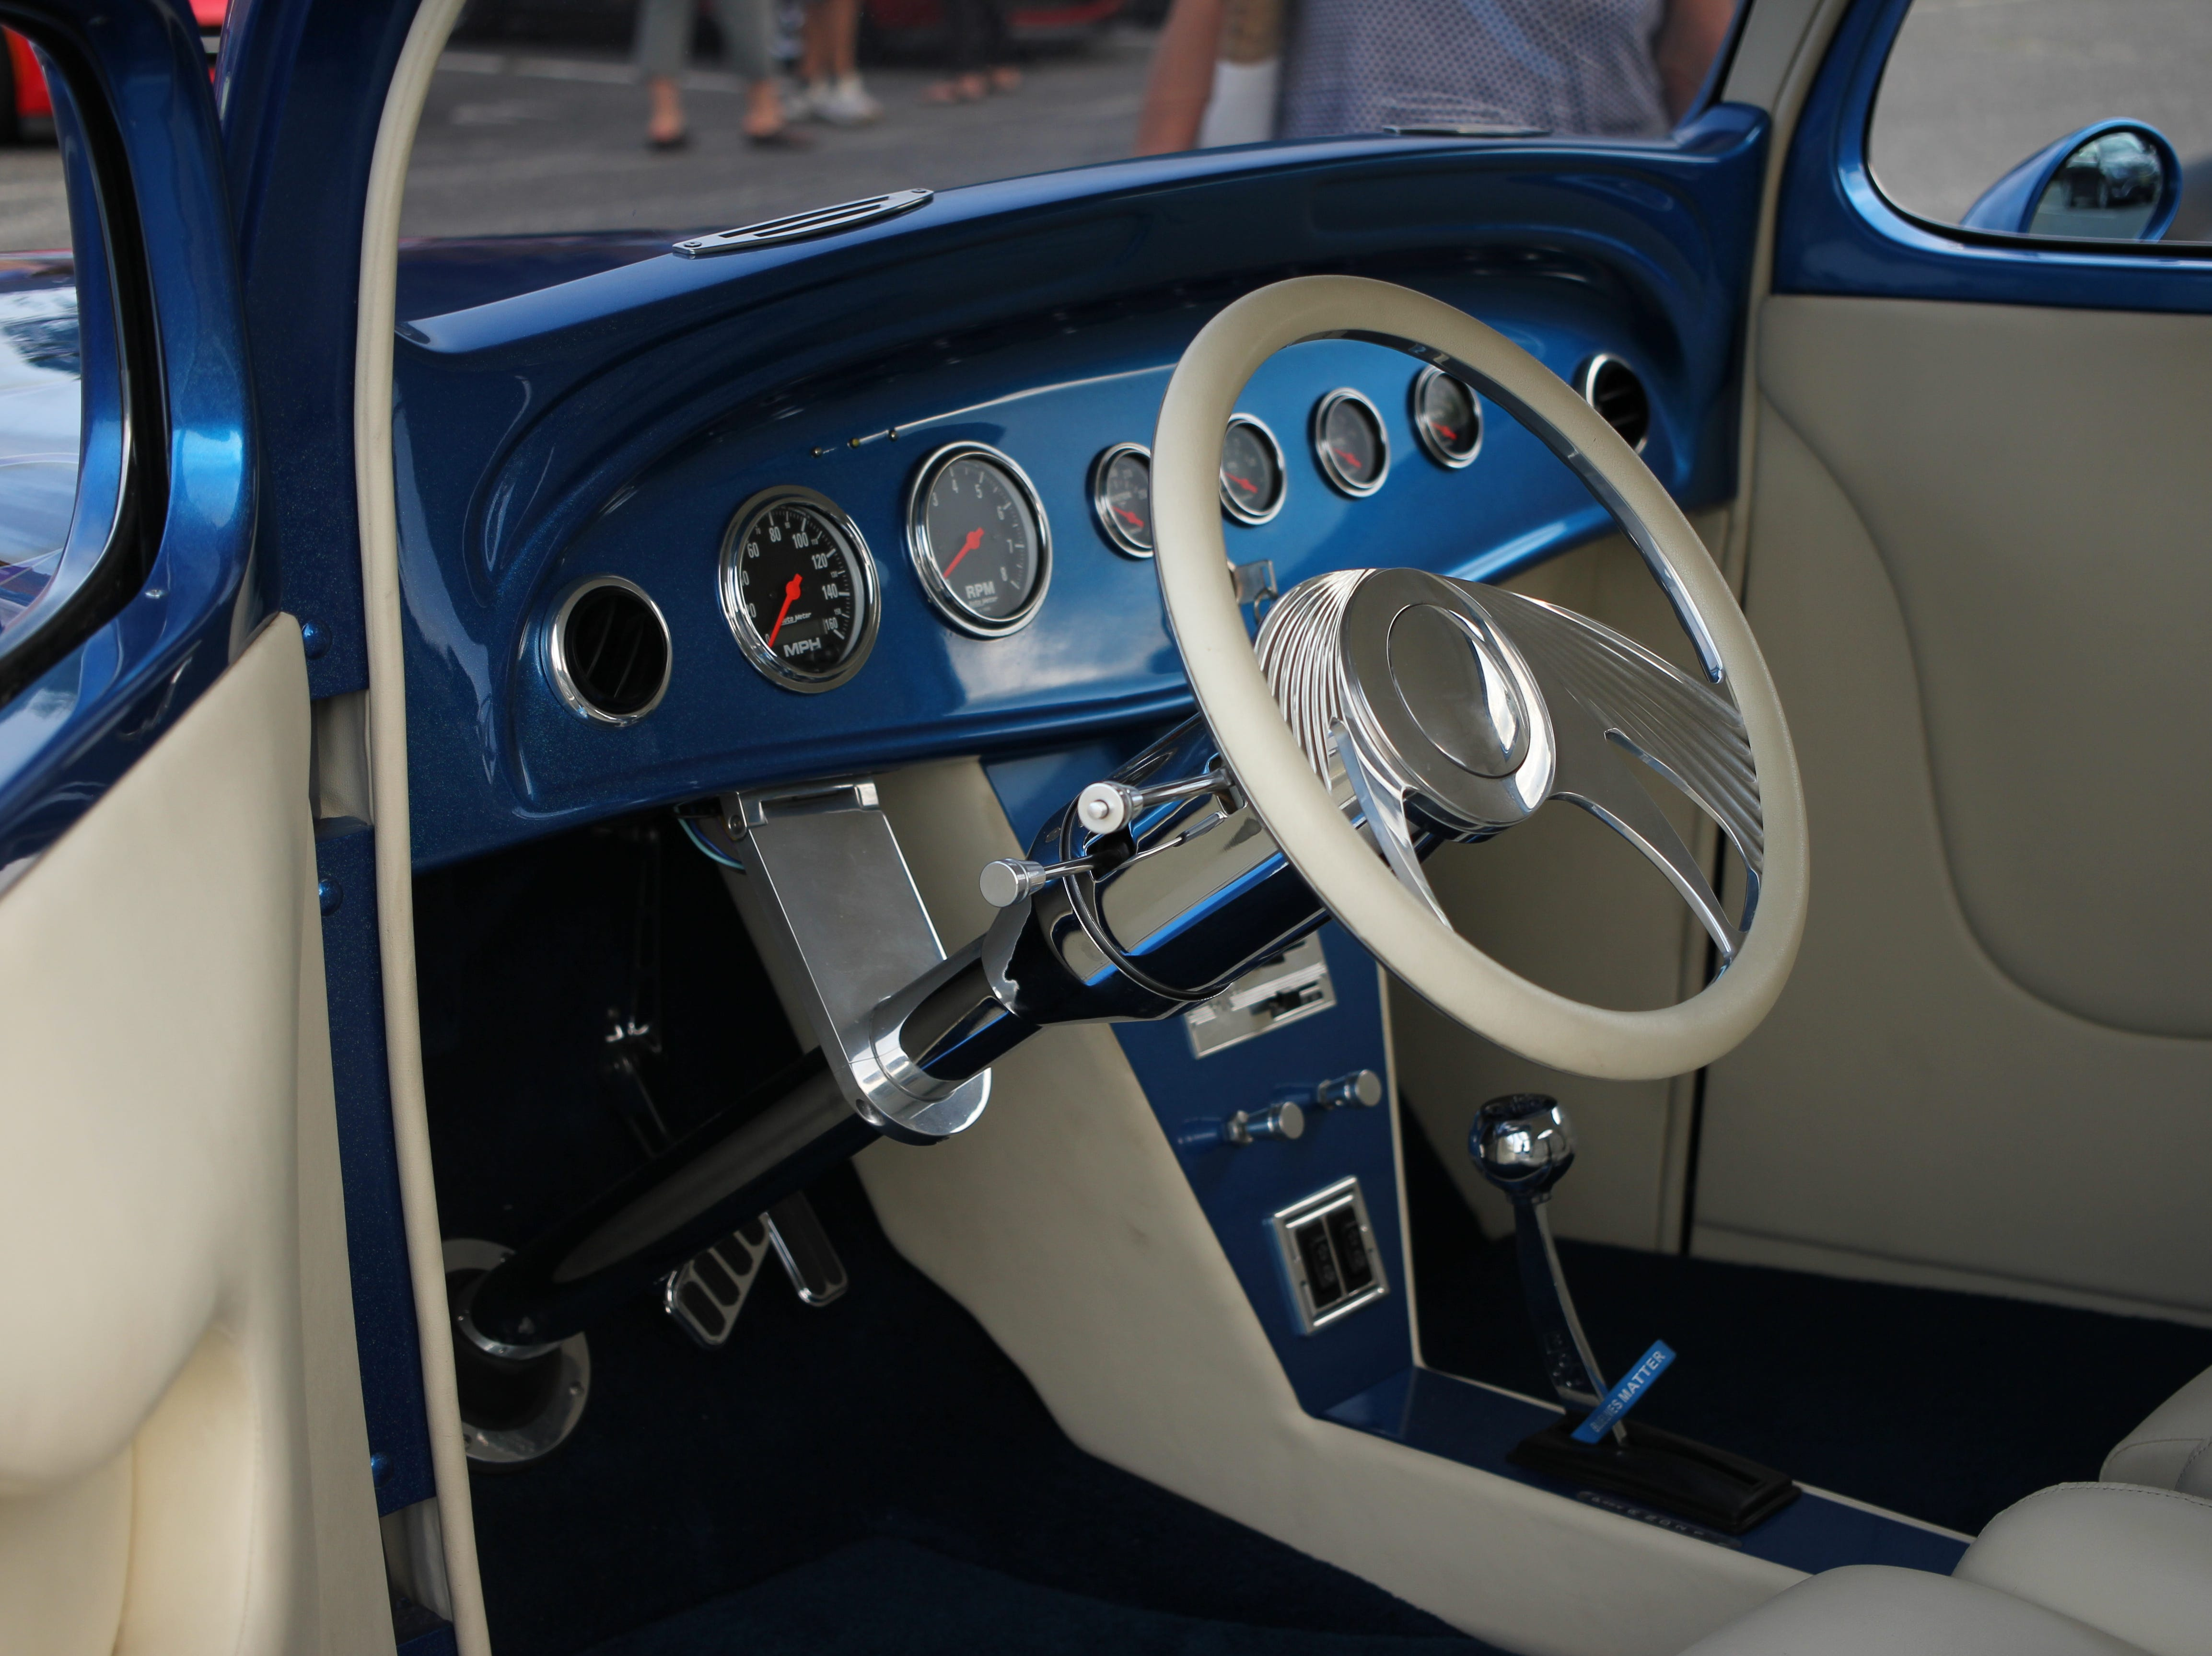 The 2nd Annual Project ZERO Car Show drew more than 100 people to the Manalapan High School parking lot, where classic cars from various eras were on display.